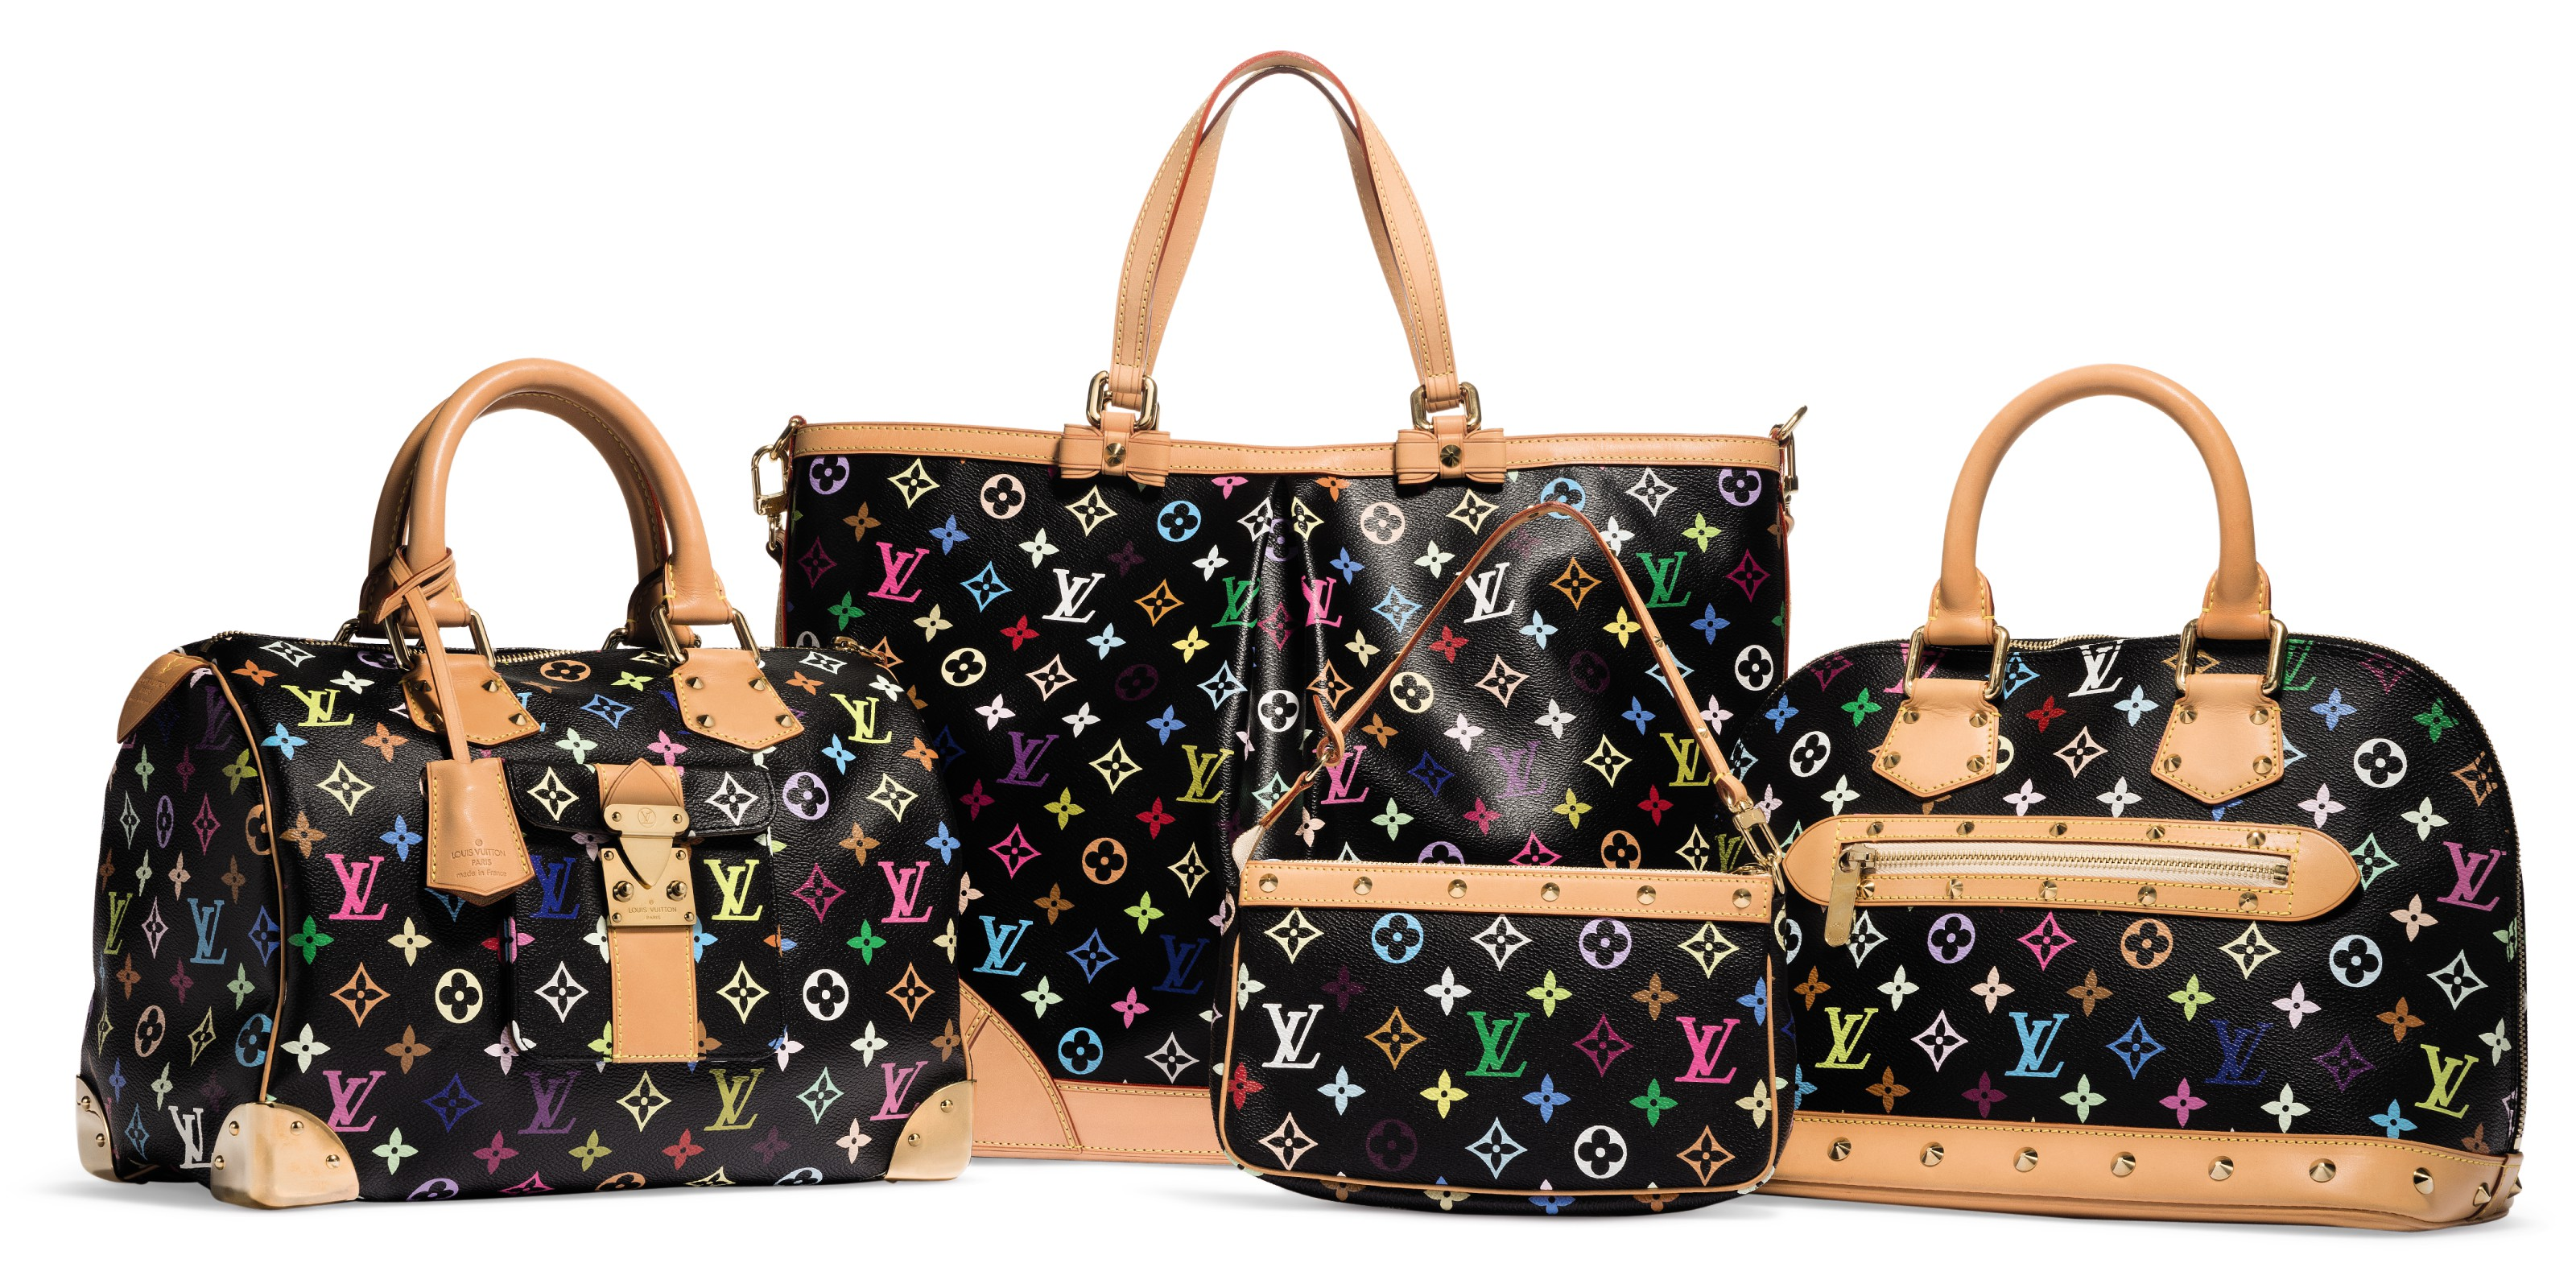 Almaemail a set of four: a limited edition black monogram multicolore